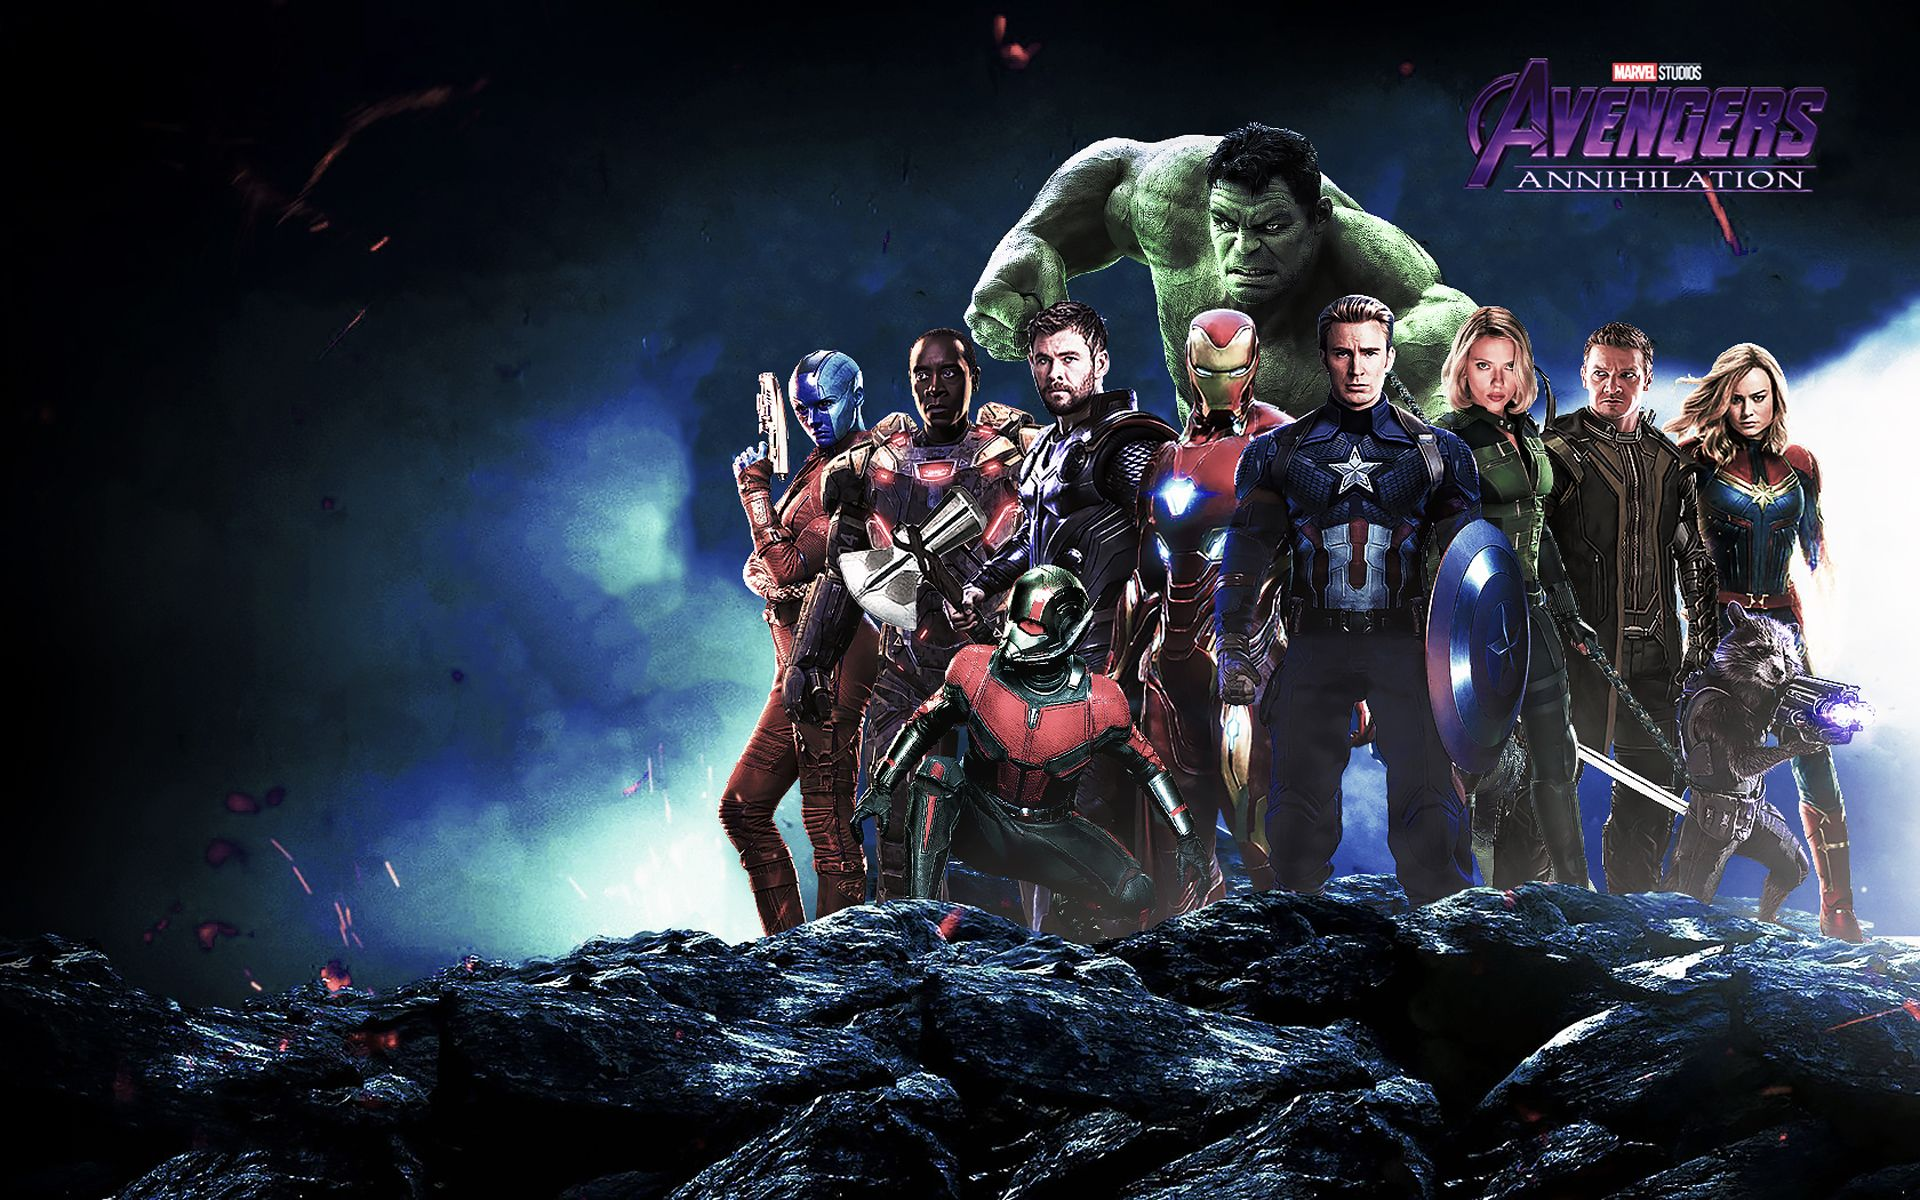 Wallpaper 4k Avengers Annihilation 2019 movies wallpapers